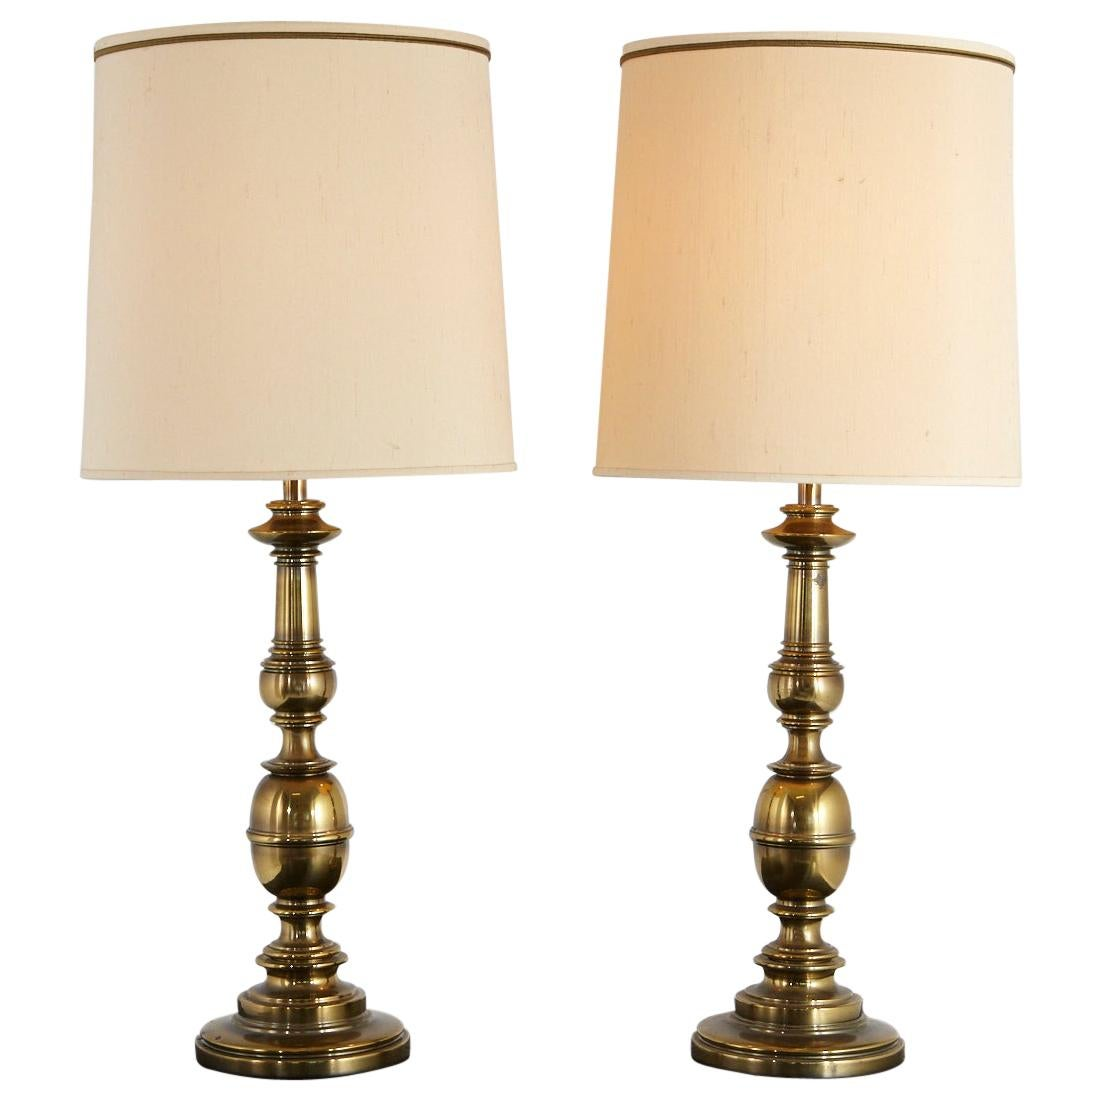 Pair of Traditional Stiffel Brass Table Lamps with Original Shades, 1950s-1960s